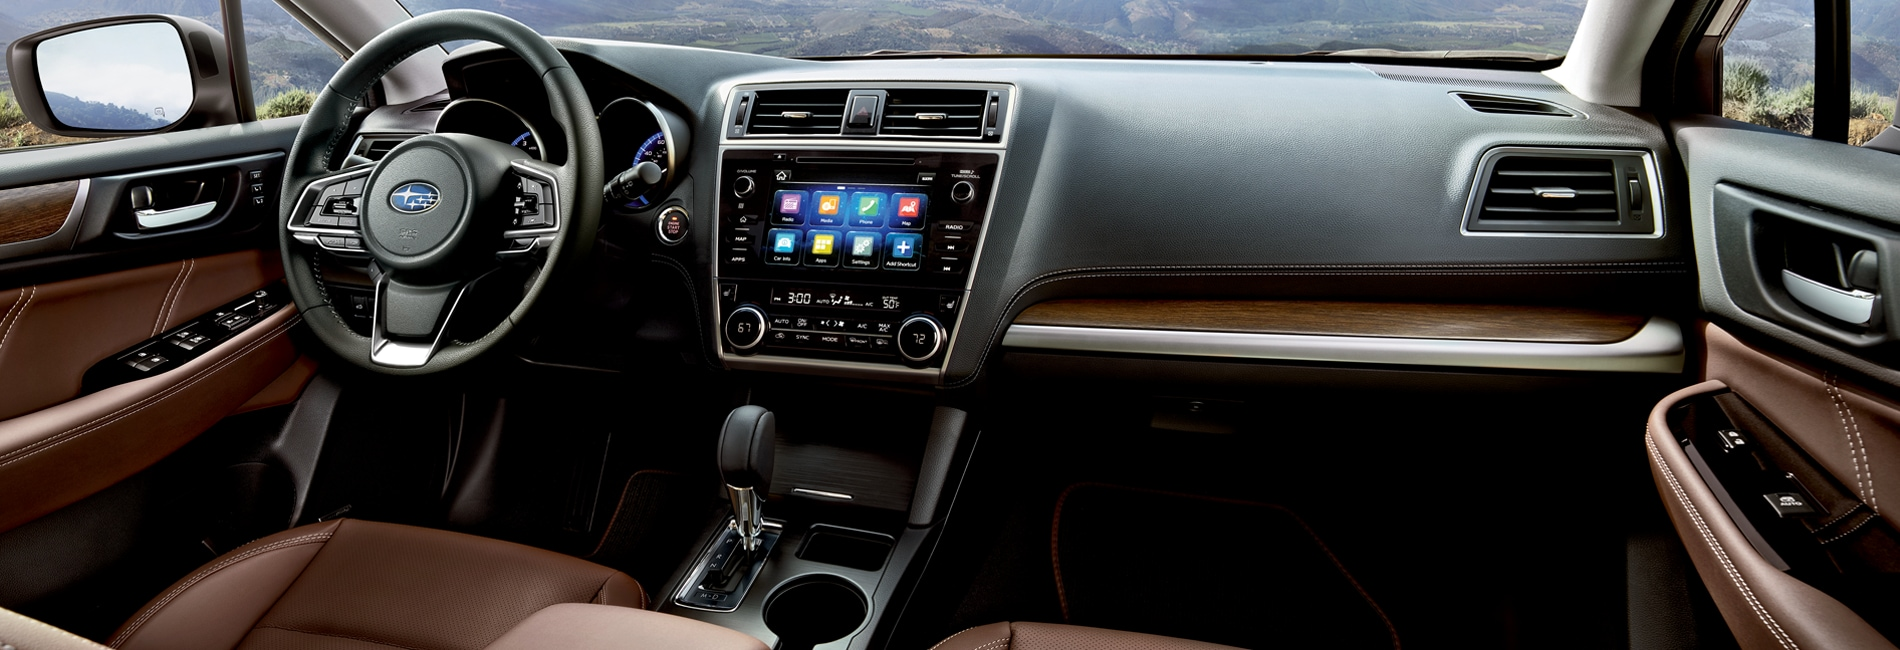 2018 Subaru Outback Interior Features